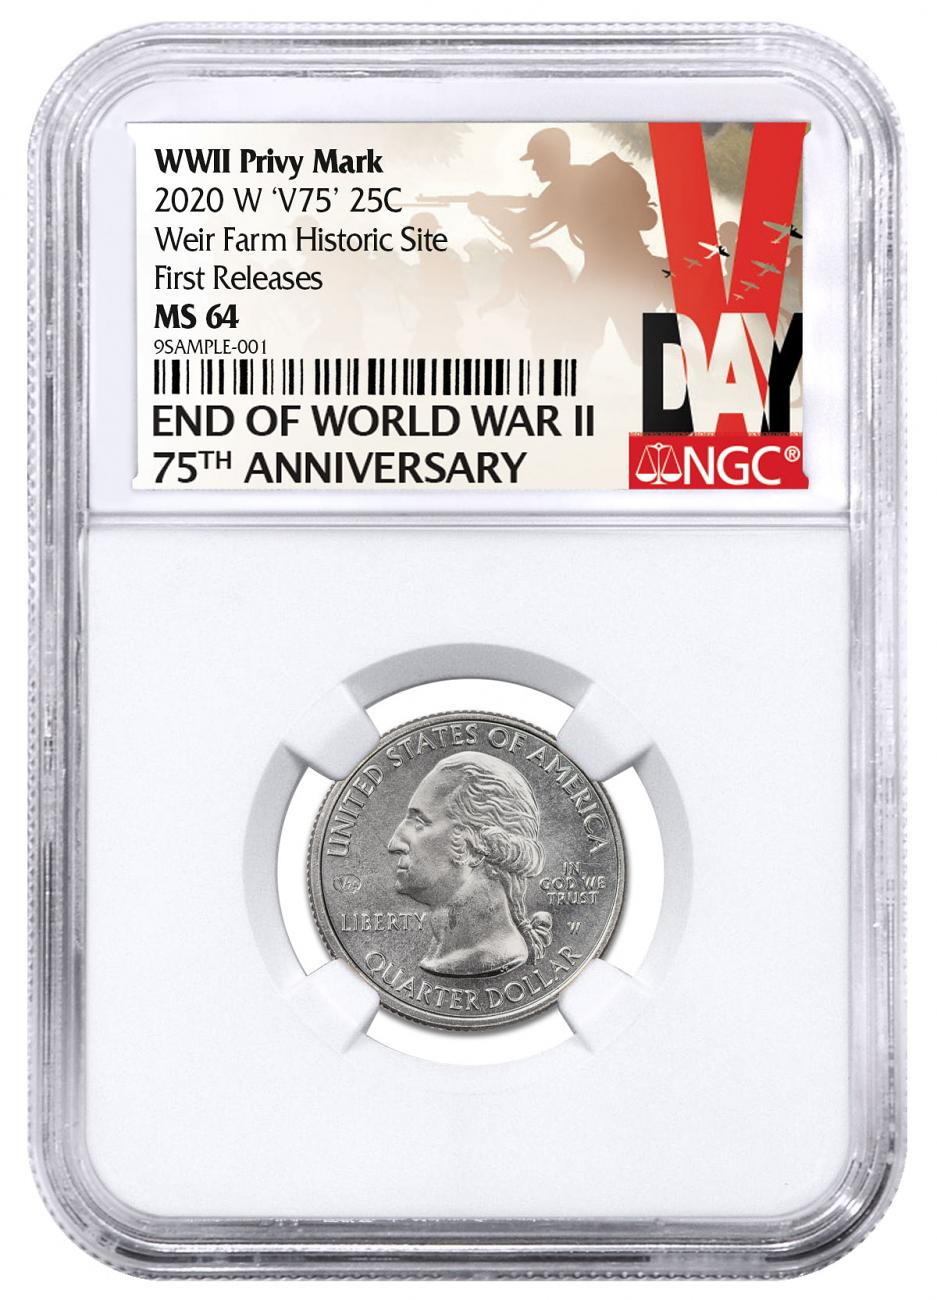 2020-W V75 Privy Mark (Connecticut) Weir Farm National Historic Site $0.25 Quarter NGC MS64 FR V-Day Label